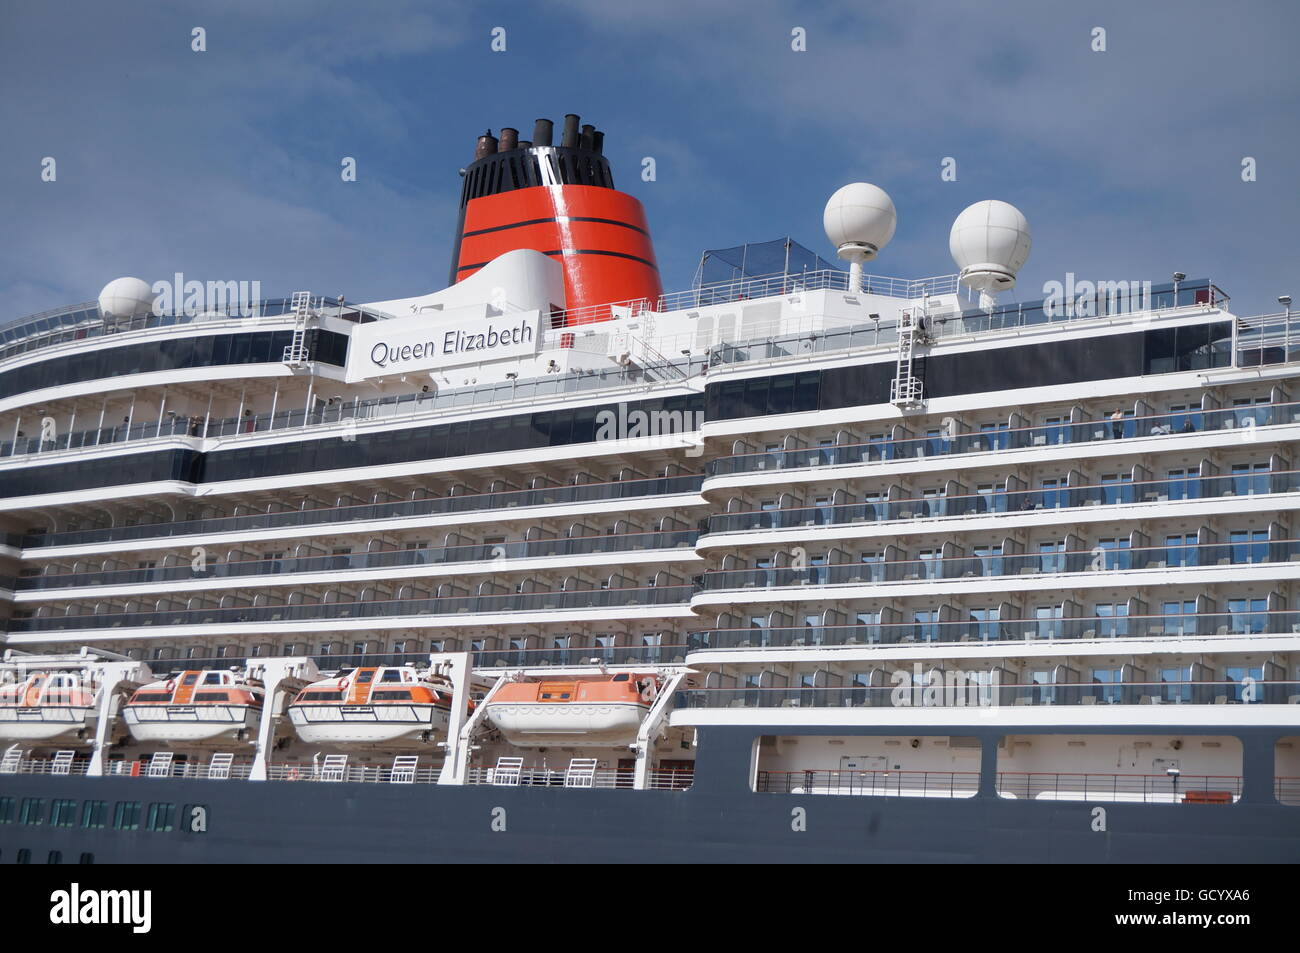 Close-up of Queen Elizabeth cruise ship - Stock Image